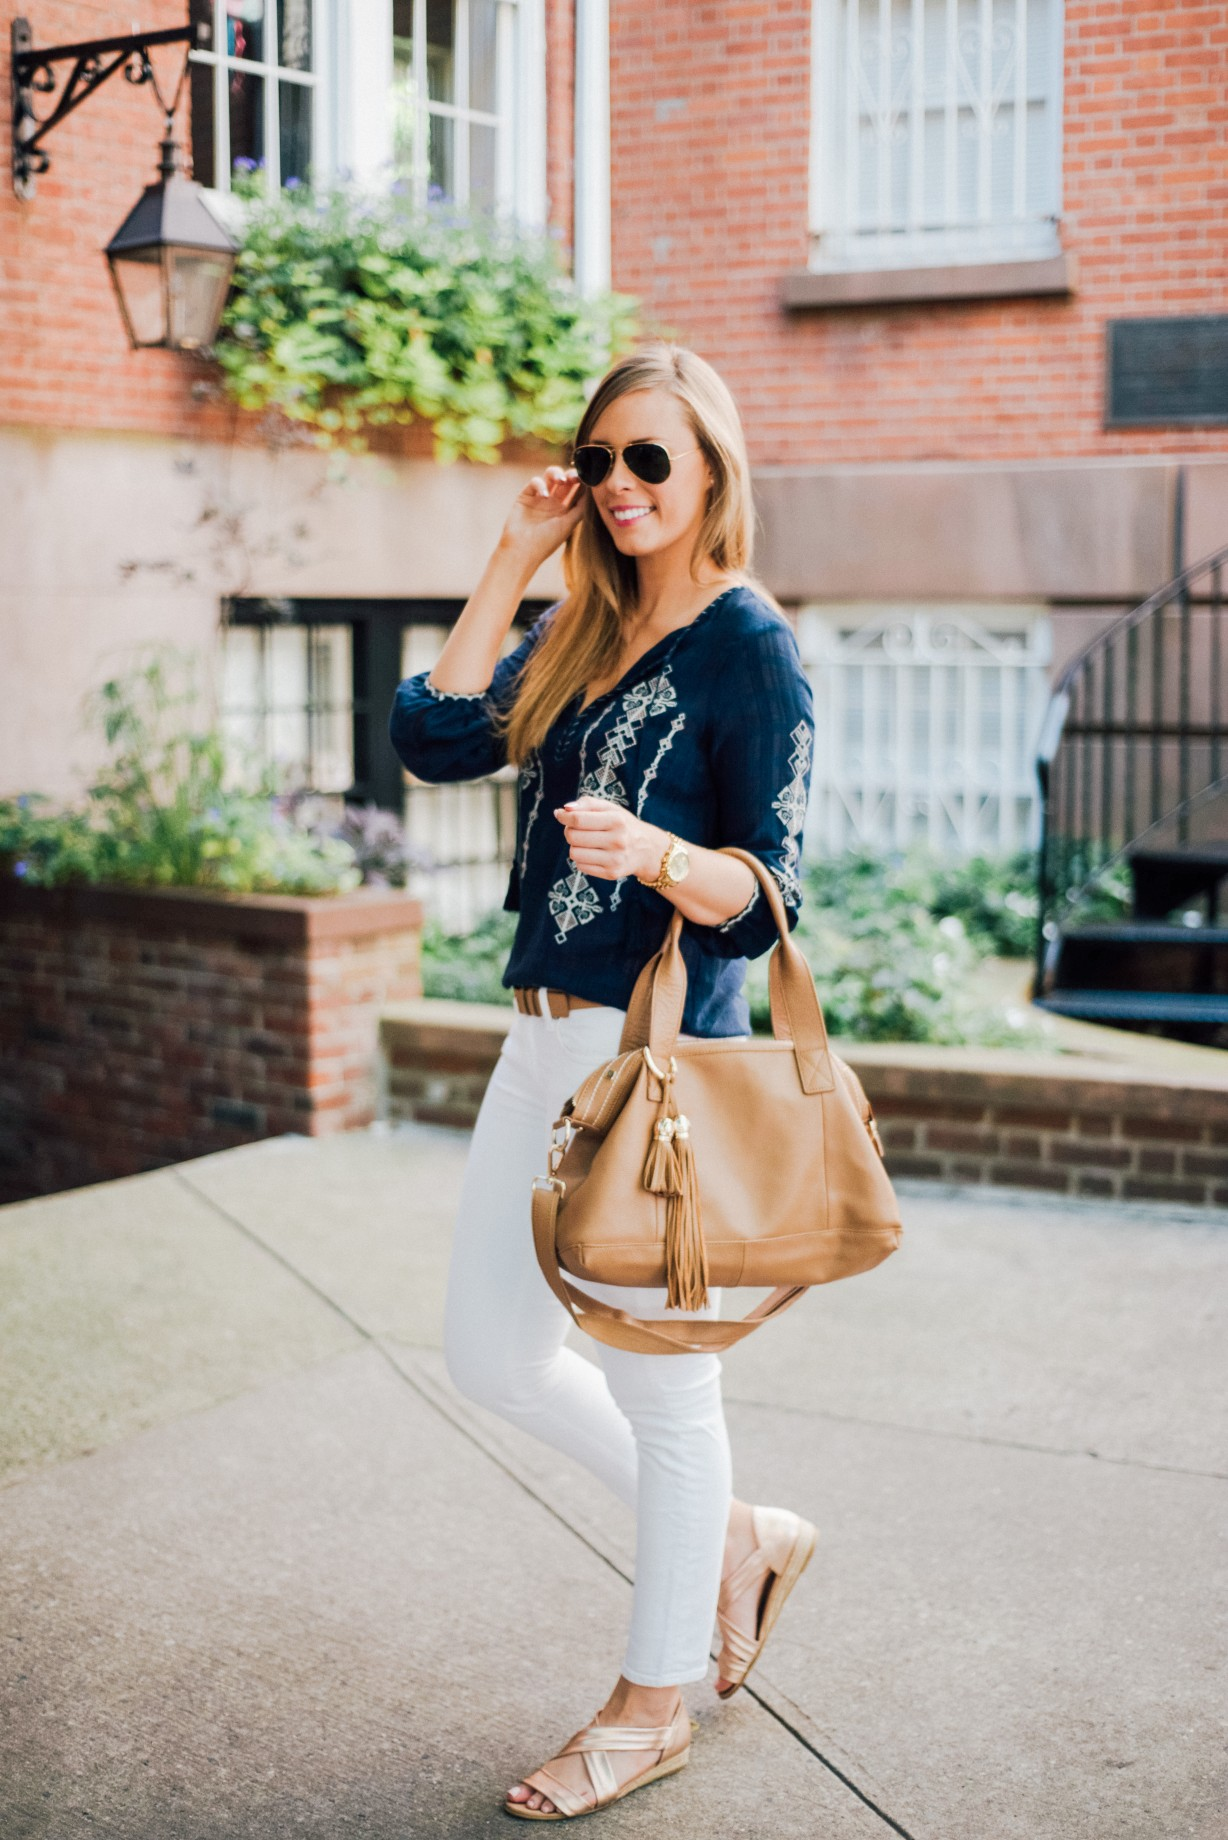 J Crew White Jeans Outfit Idea Boho Top Ray Ban Aviators Fashion Blogger West Village New York Lauren Slade Style Elixir 1